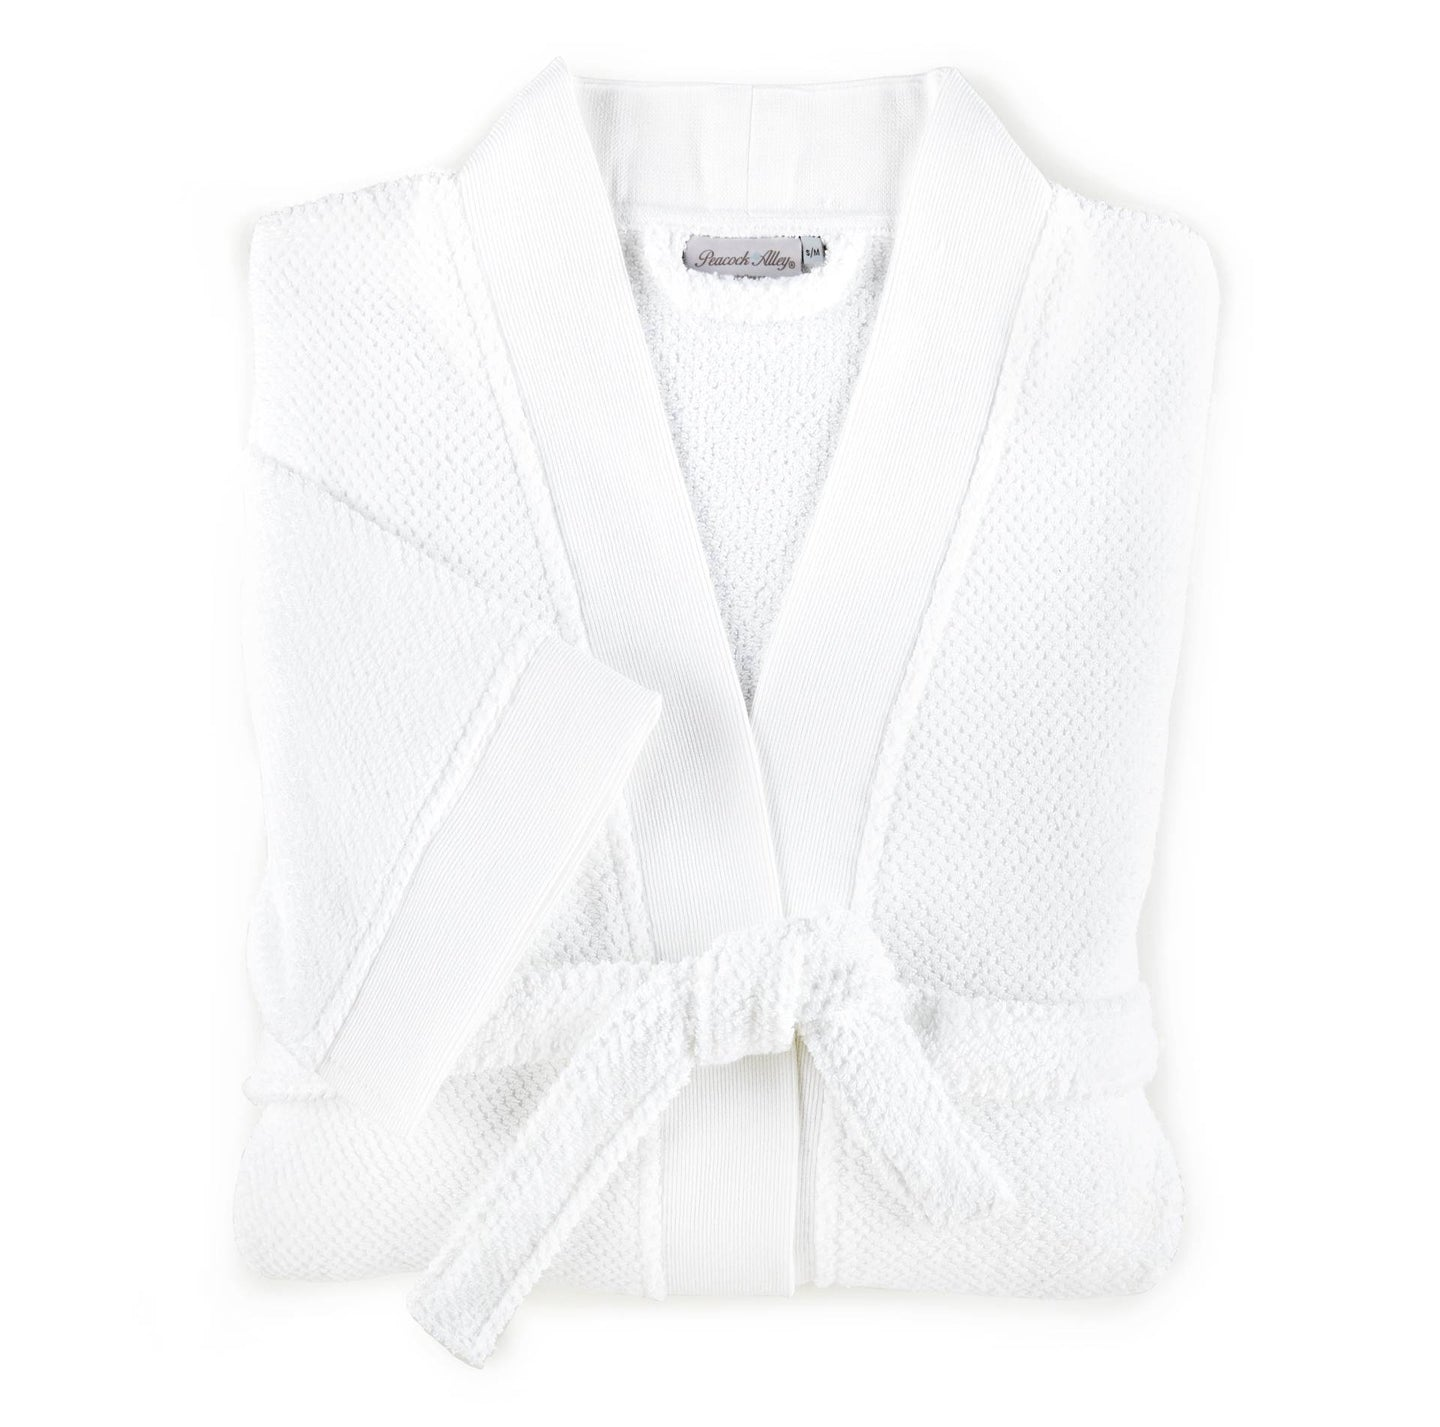 folded white cotton bath robe